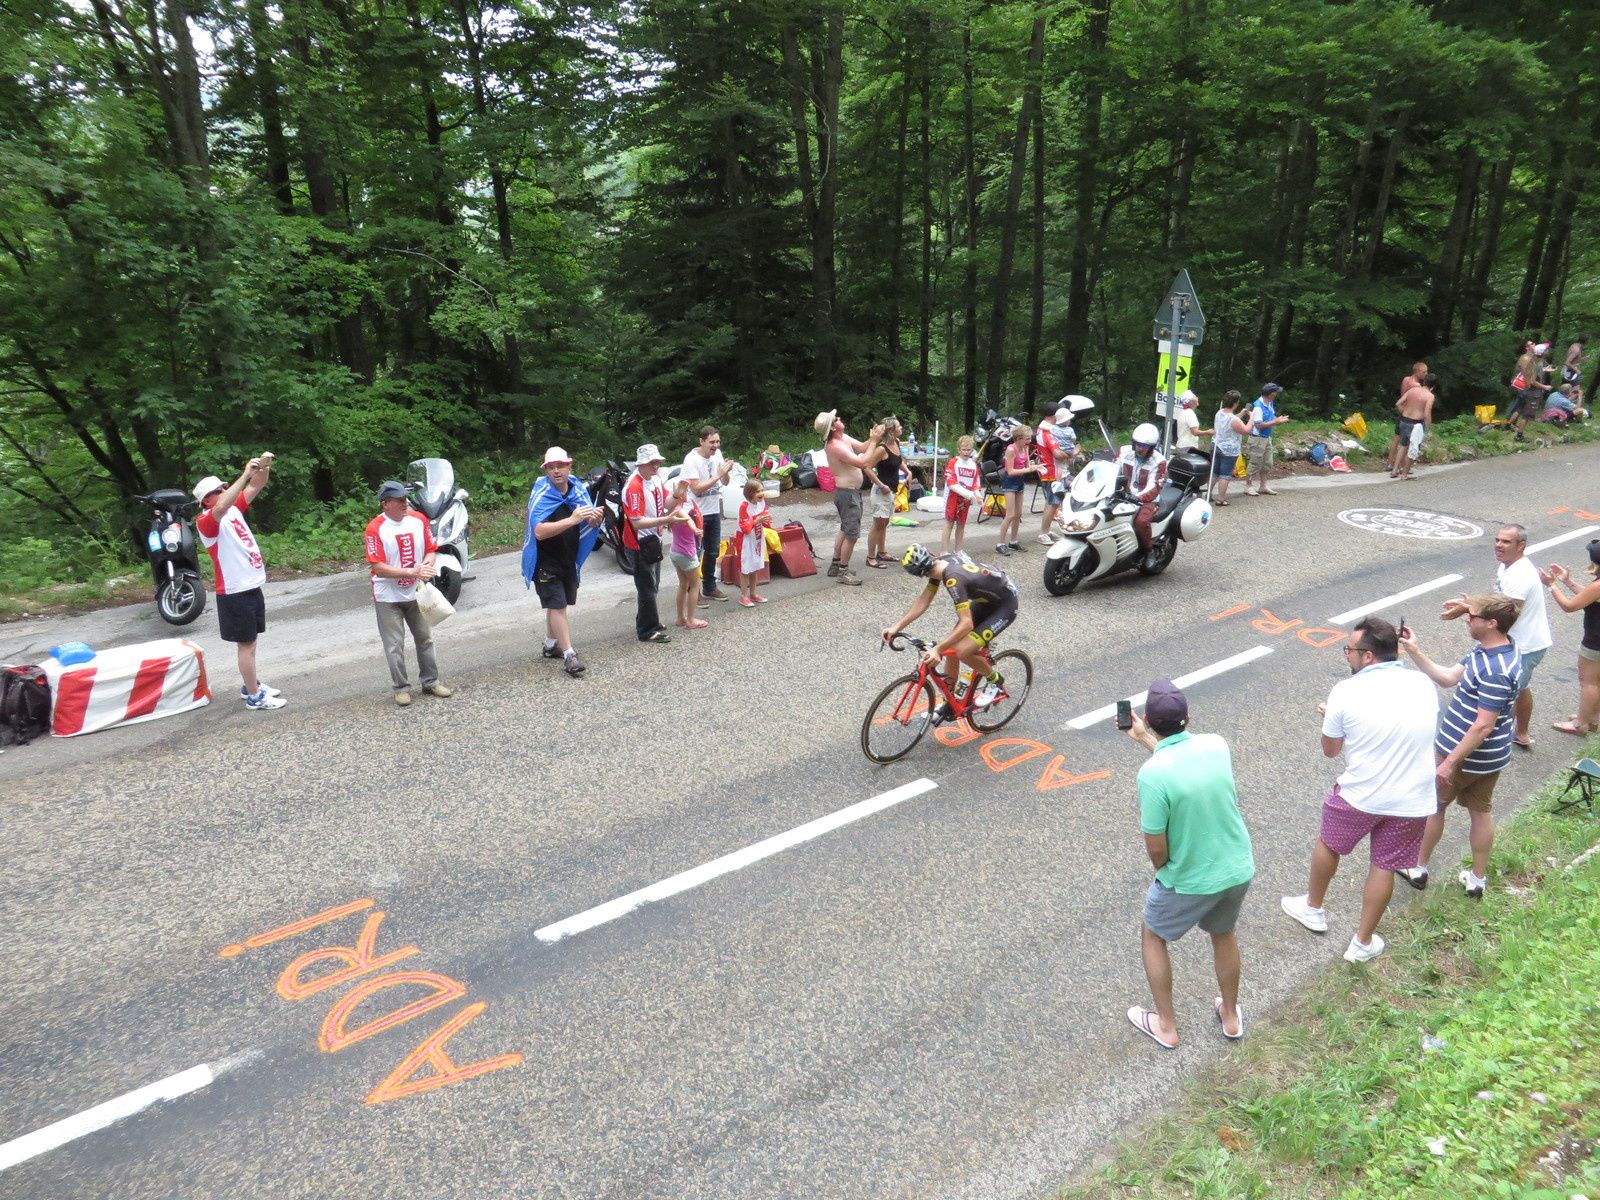 8 juillet 2017 - Jura tour de France-esque